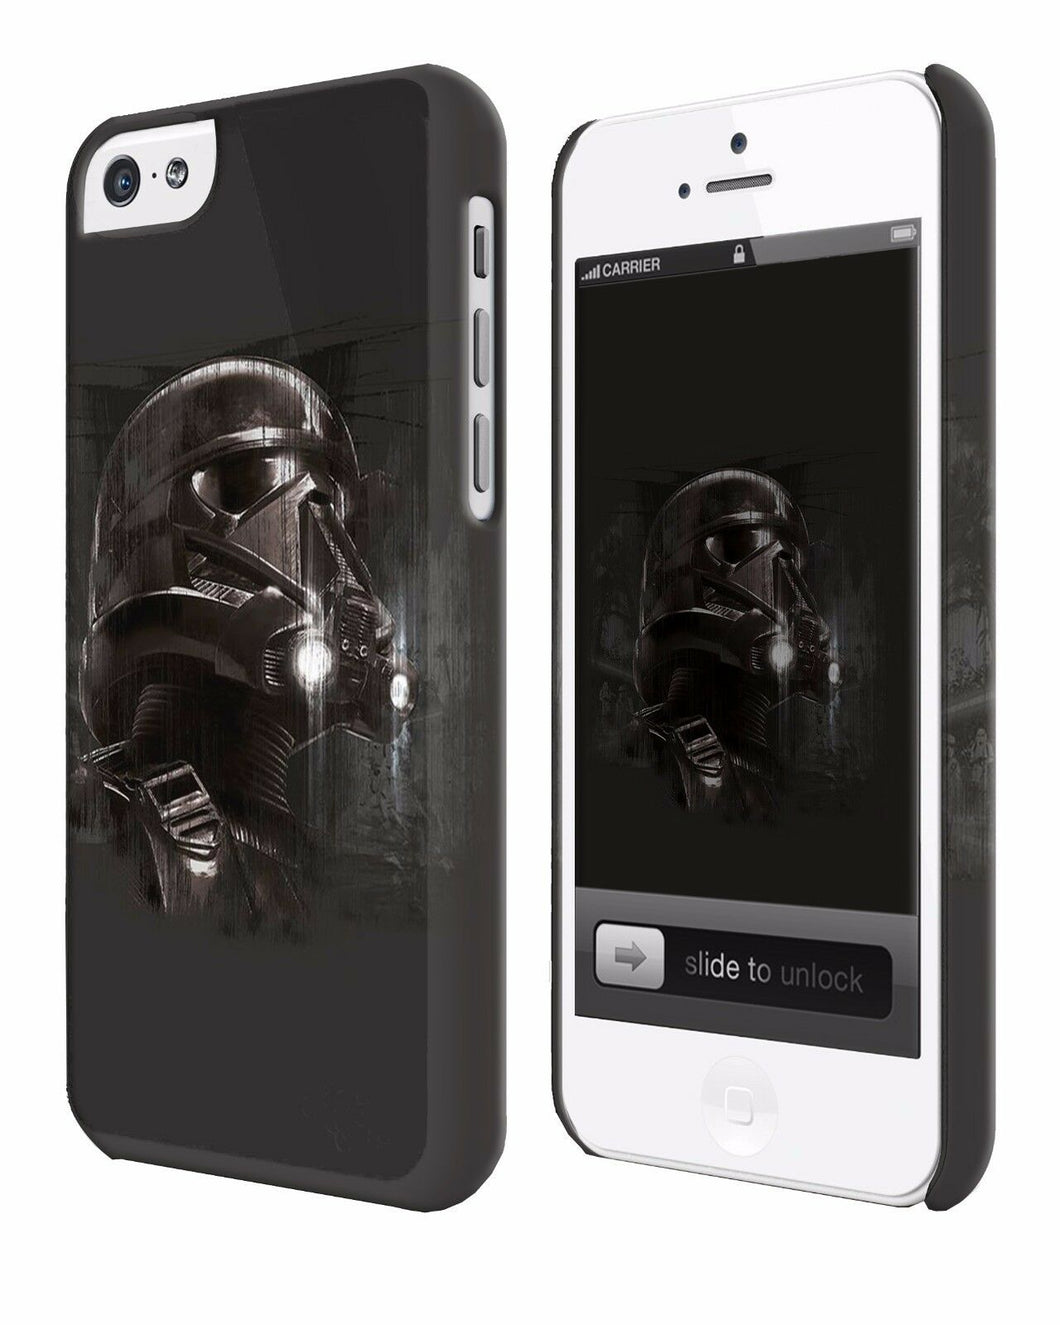 Rogue One A Star Wars Story iPhone 4S 5 6 7 8 X XS Max XR 11 Pro Plus SE Case 4